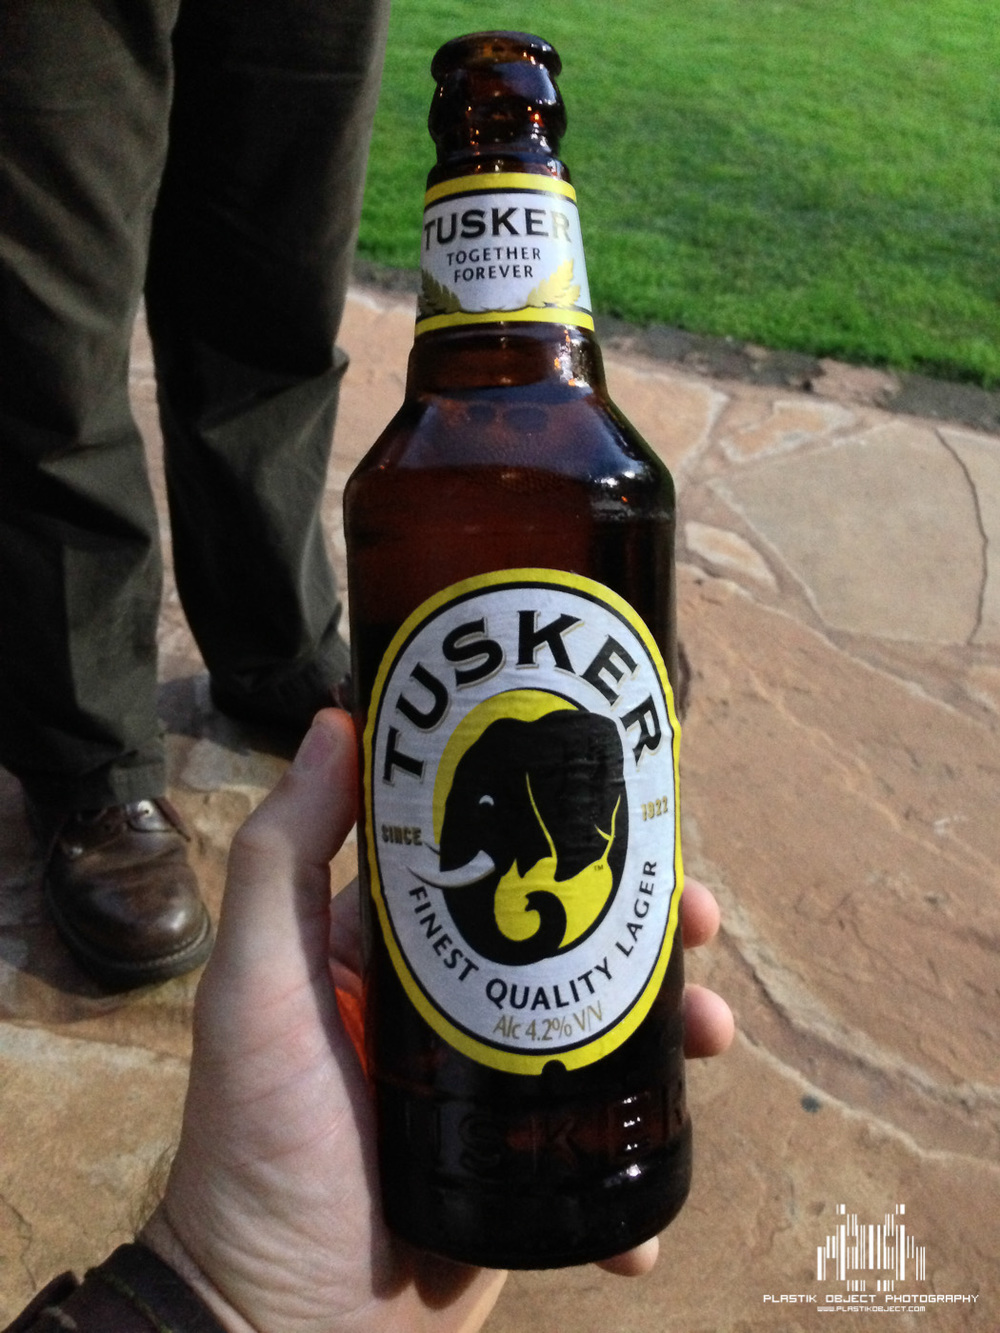 Thanks to David, the wedding is where my lips were introduced to Tusker. I still crave one and find my self scouring the US to find their distributor.